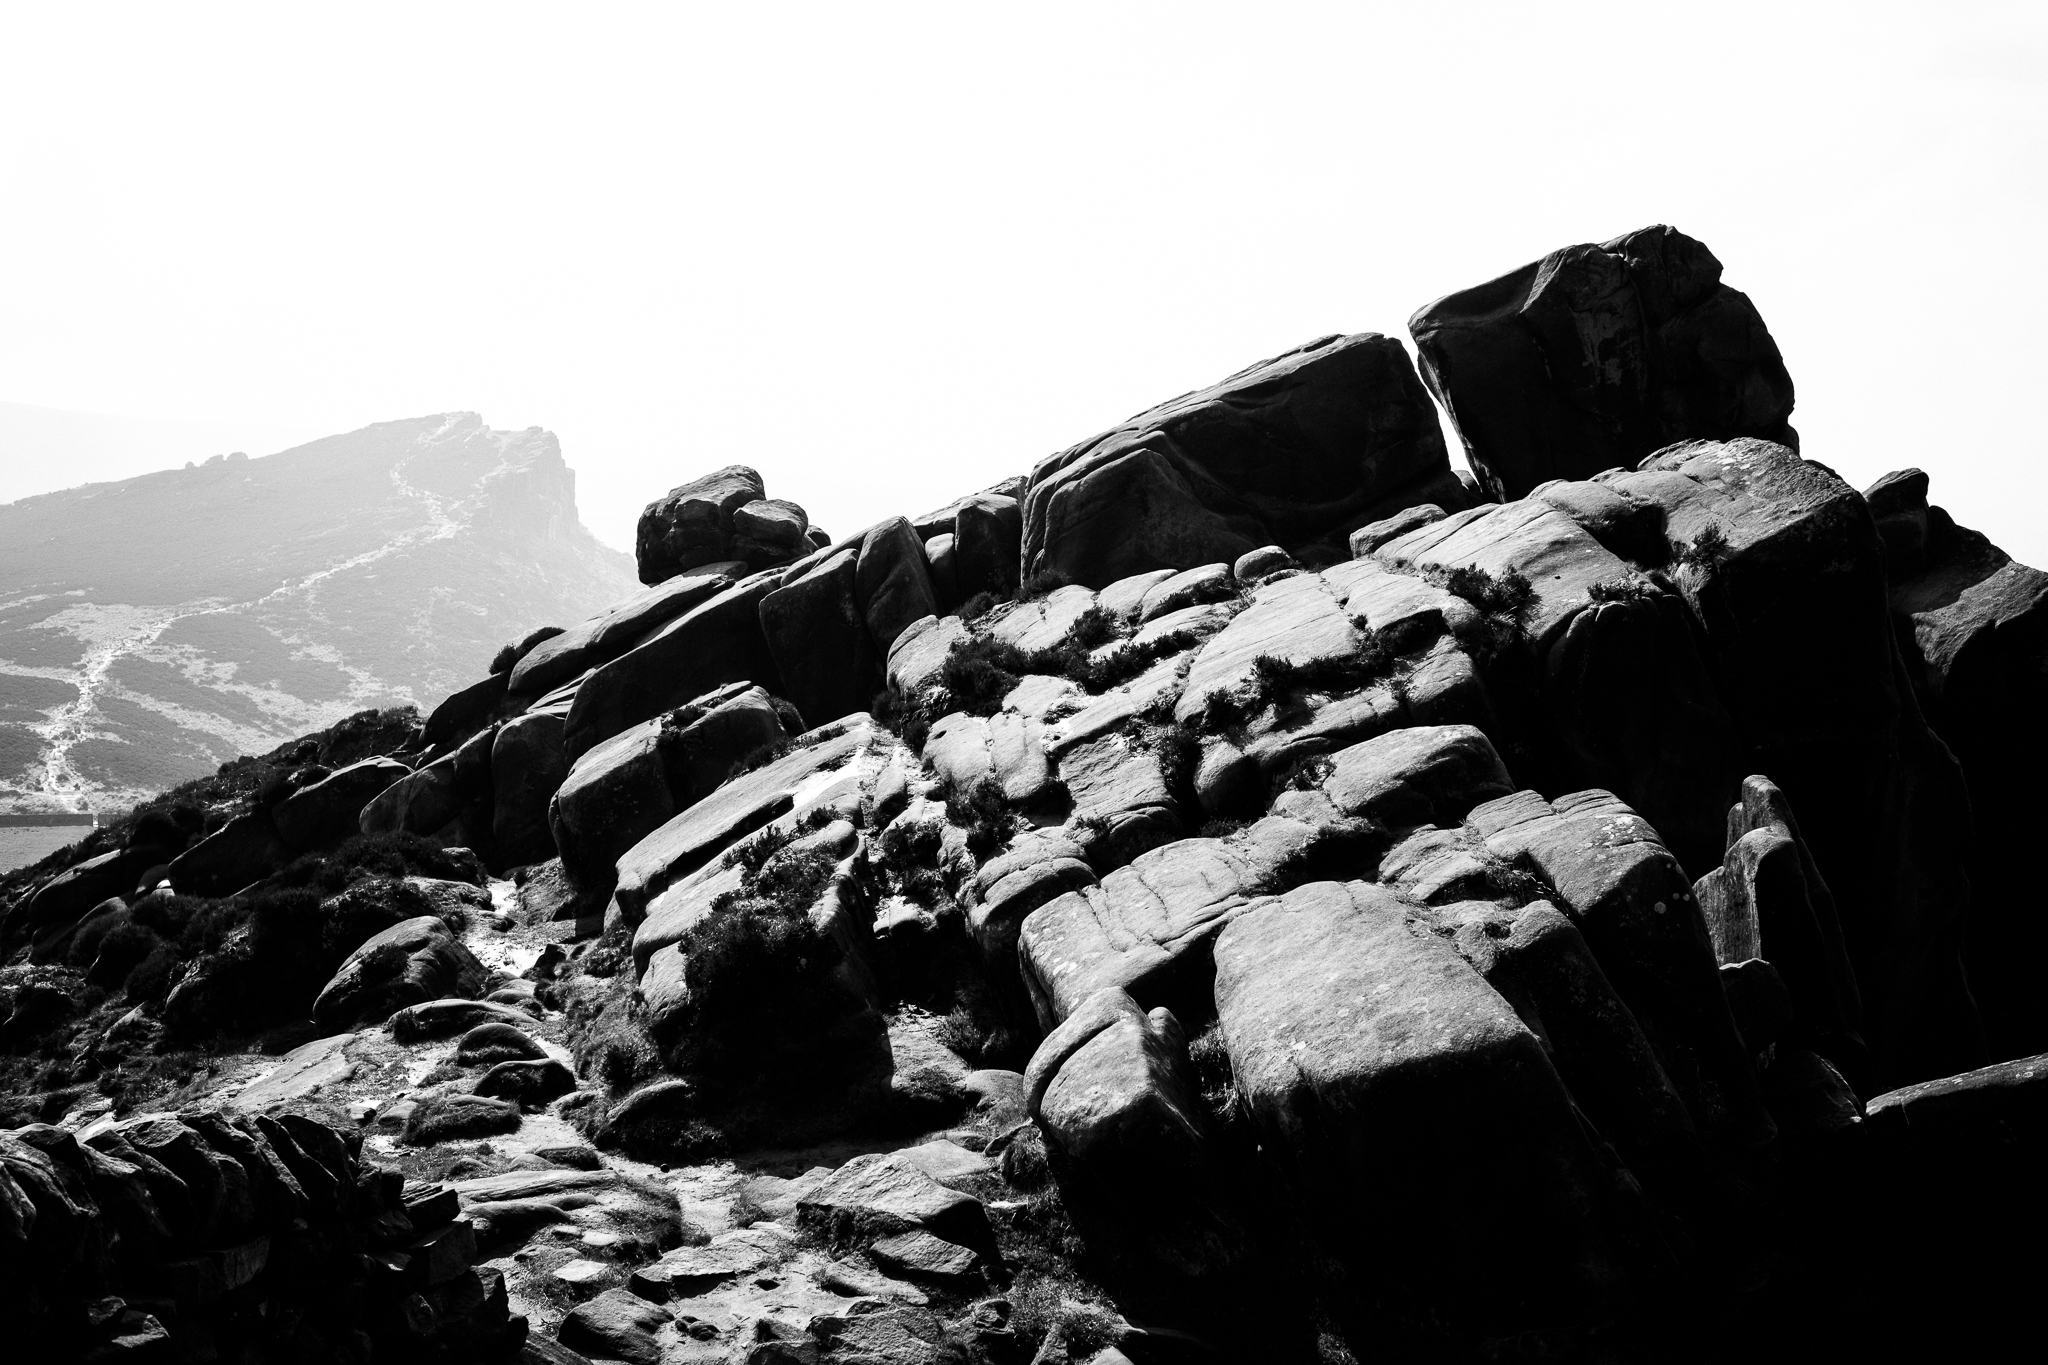 03.23.2017 Photowalk with Get Some Fresh Air The Roaches and Lud's Church Ludchurch Staffordshire Upper Hulme Ridge Rocks-8.jpg